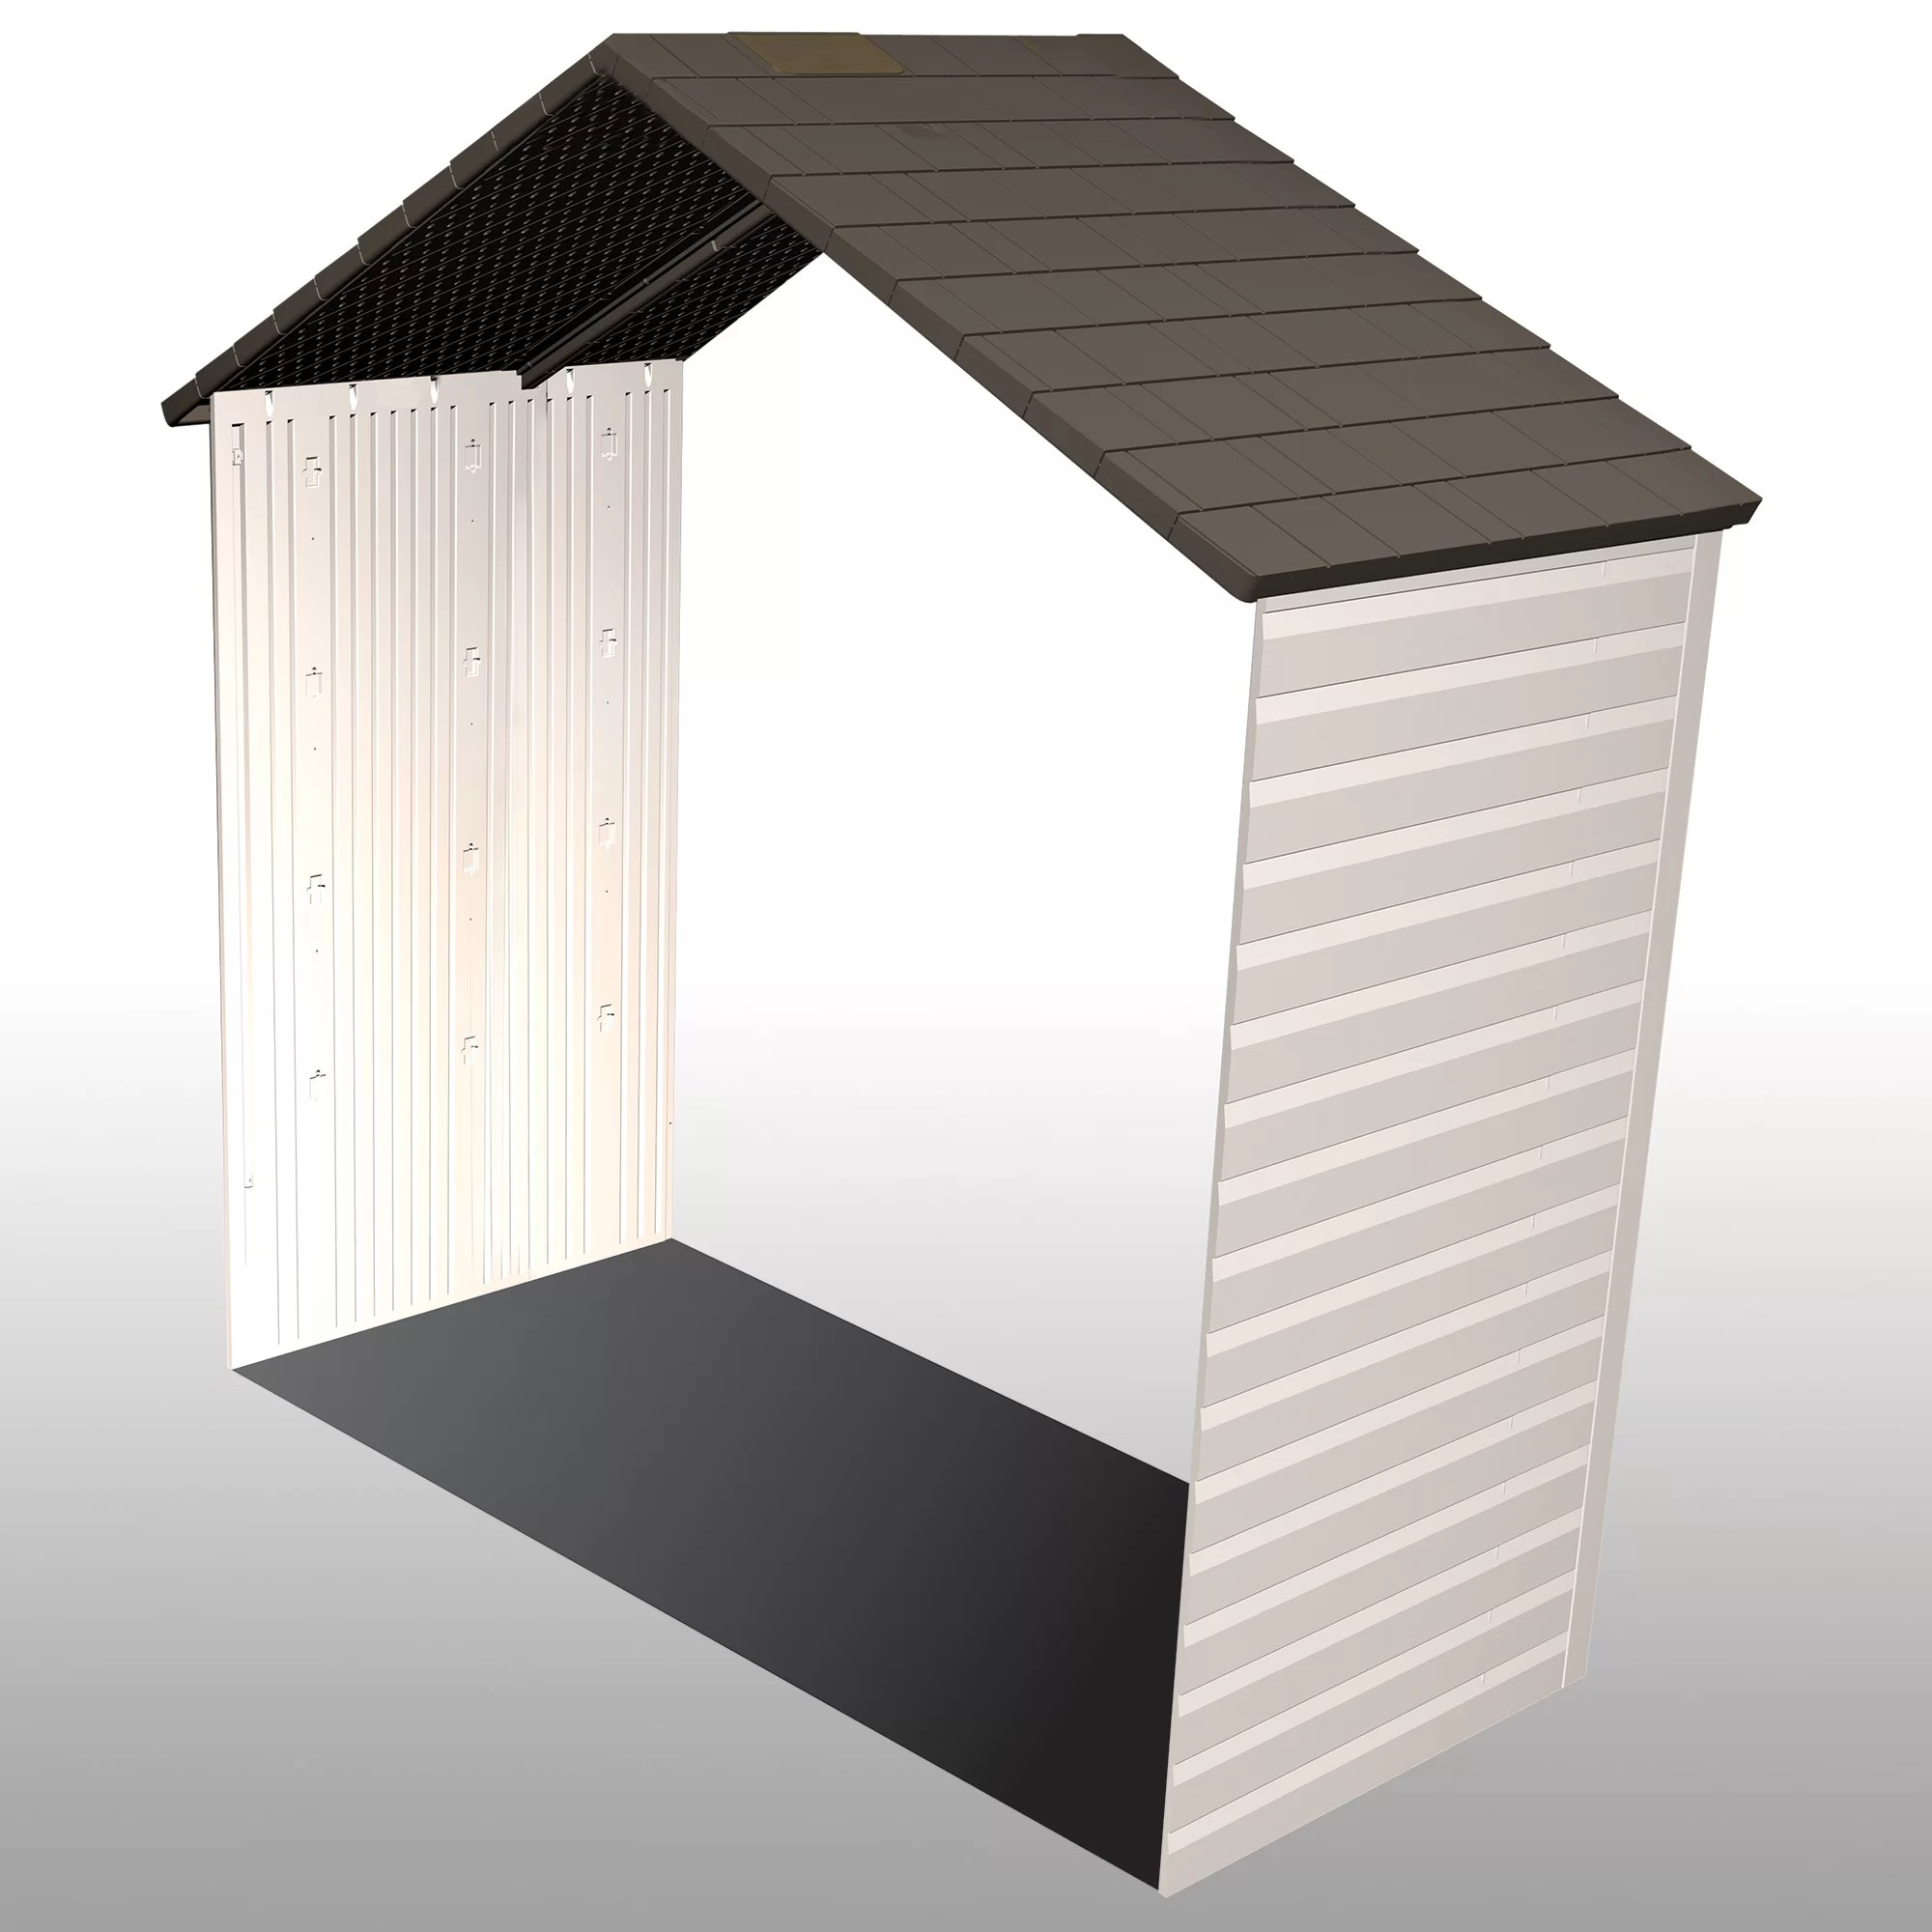 Garage Awning Extension 8 W X 2 5 D Shed Extension Kit